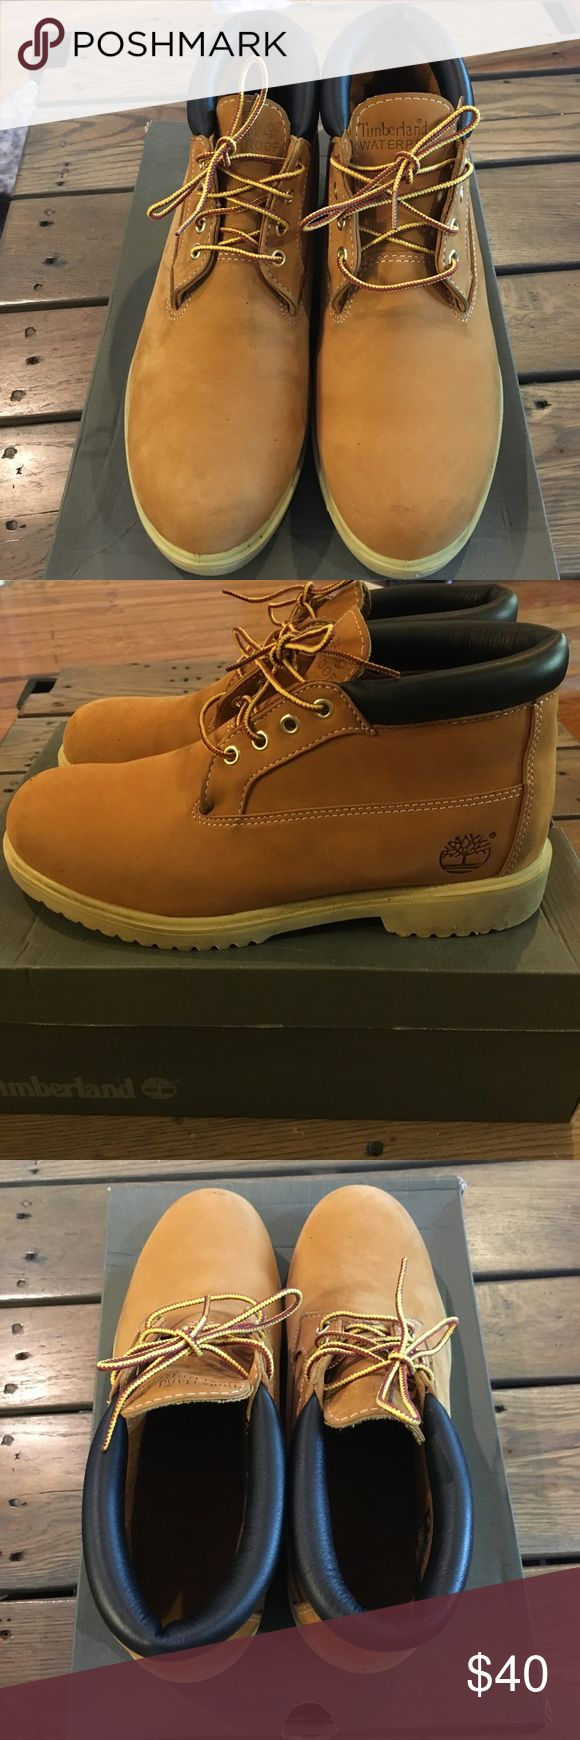 Men's Timberland Chukka Boots Good condition chukka wheat Timberlands. Please please Check pictures timberlands do have a few tiny stains and a scrape on the right boot. Timberland Shoes Chukka Boots